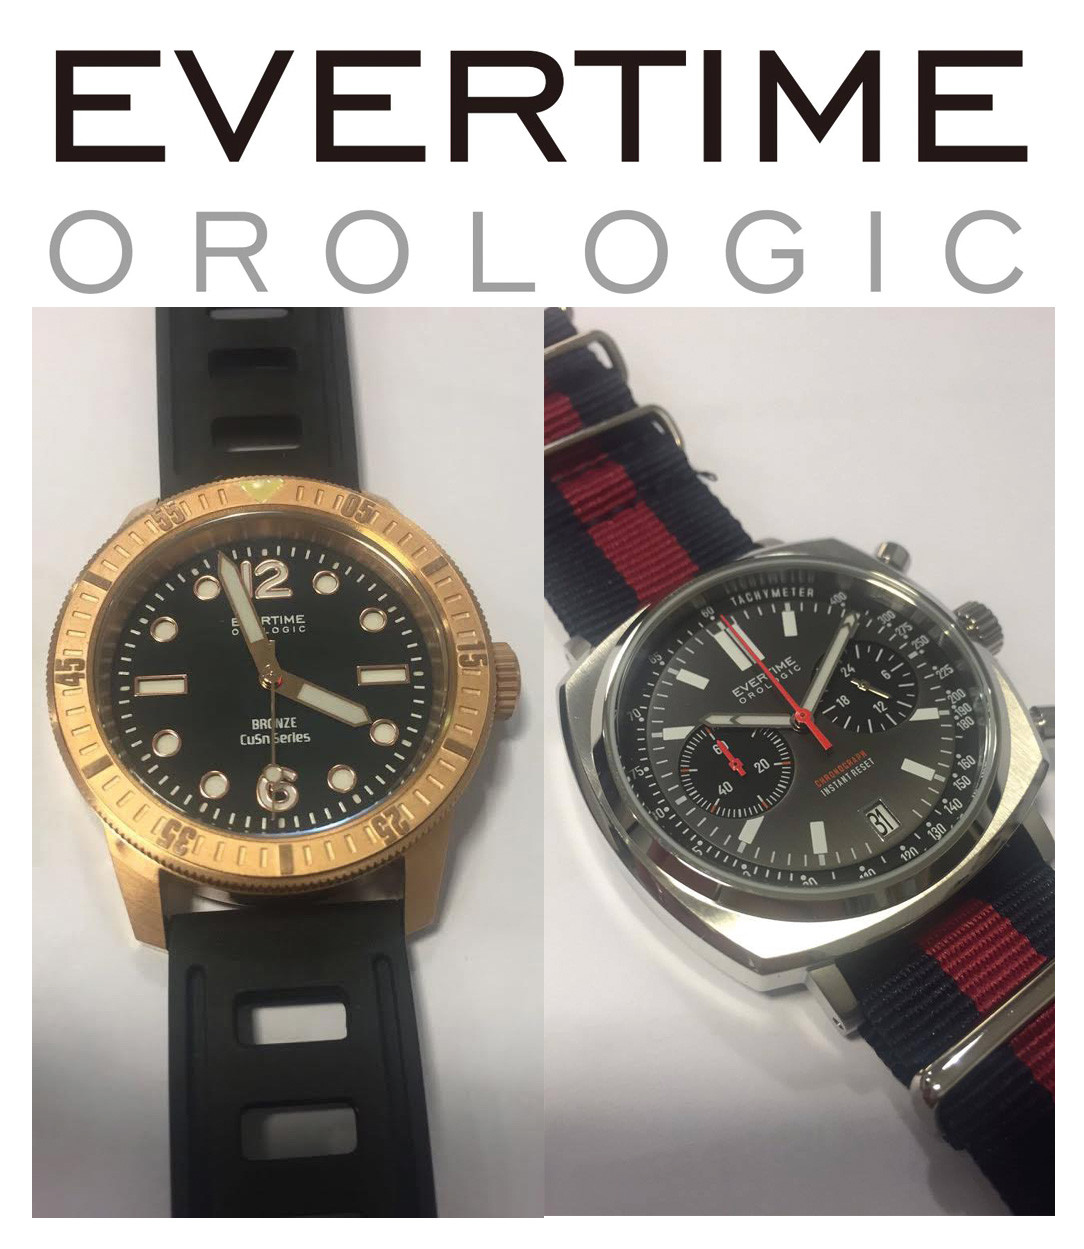 Meet your Micro Maker – Billy Lau from Evertime-Orologic